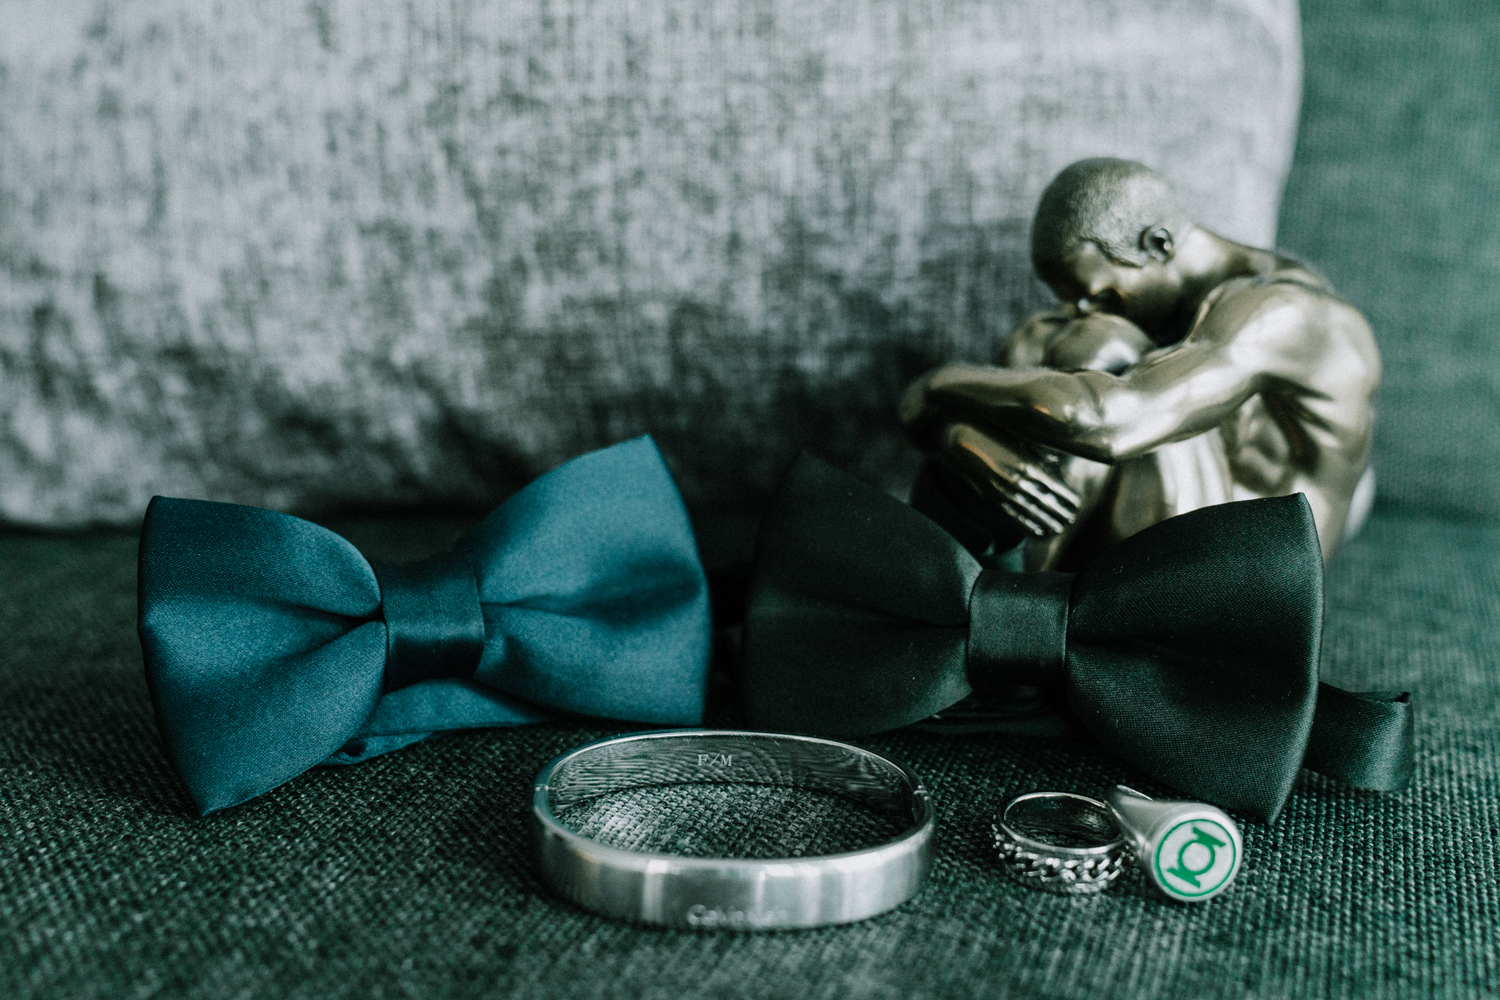 Gay wedding photo showing detail of bow ties and wedding rings